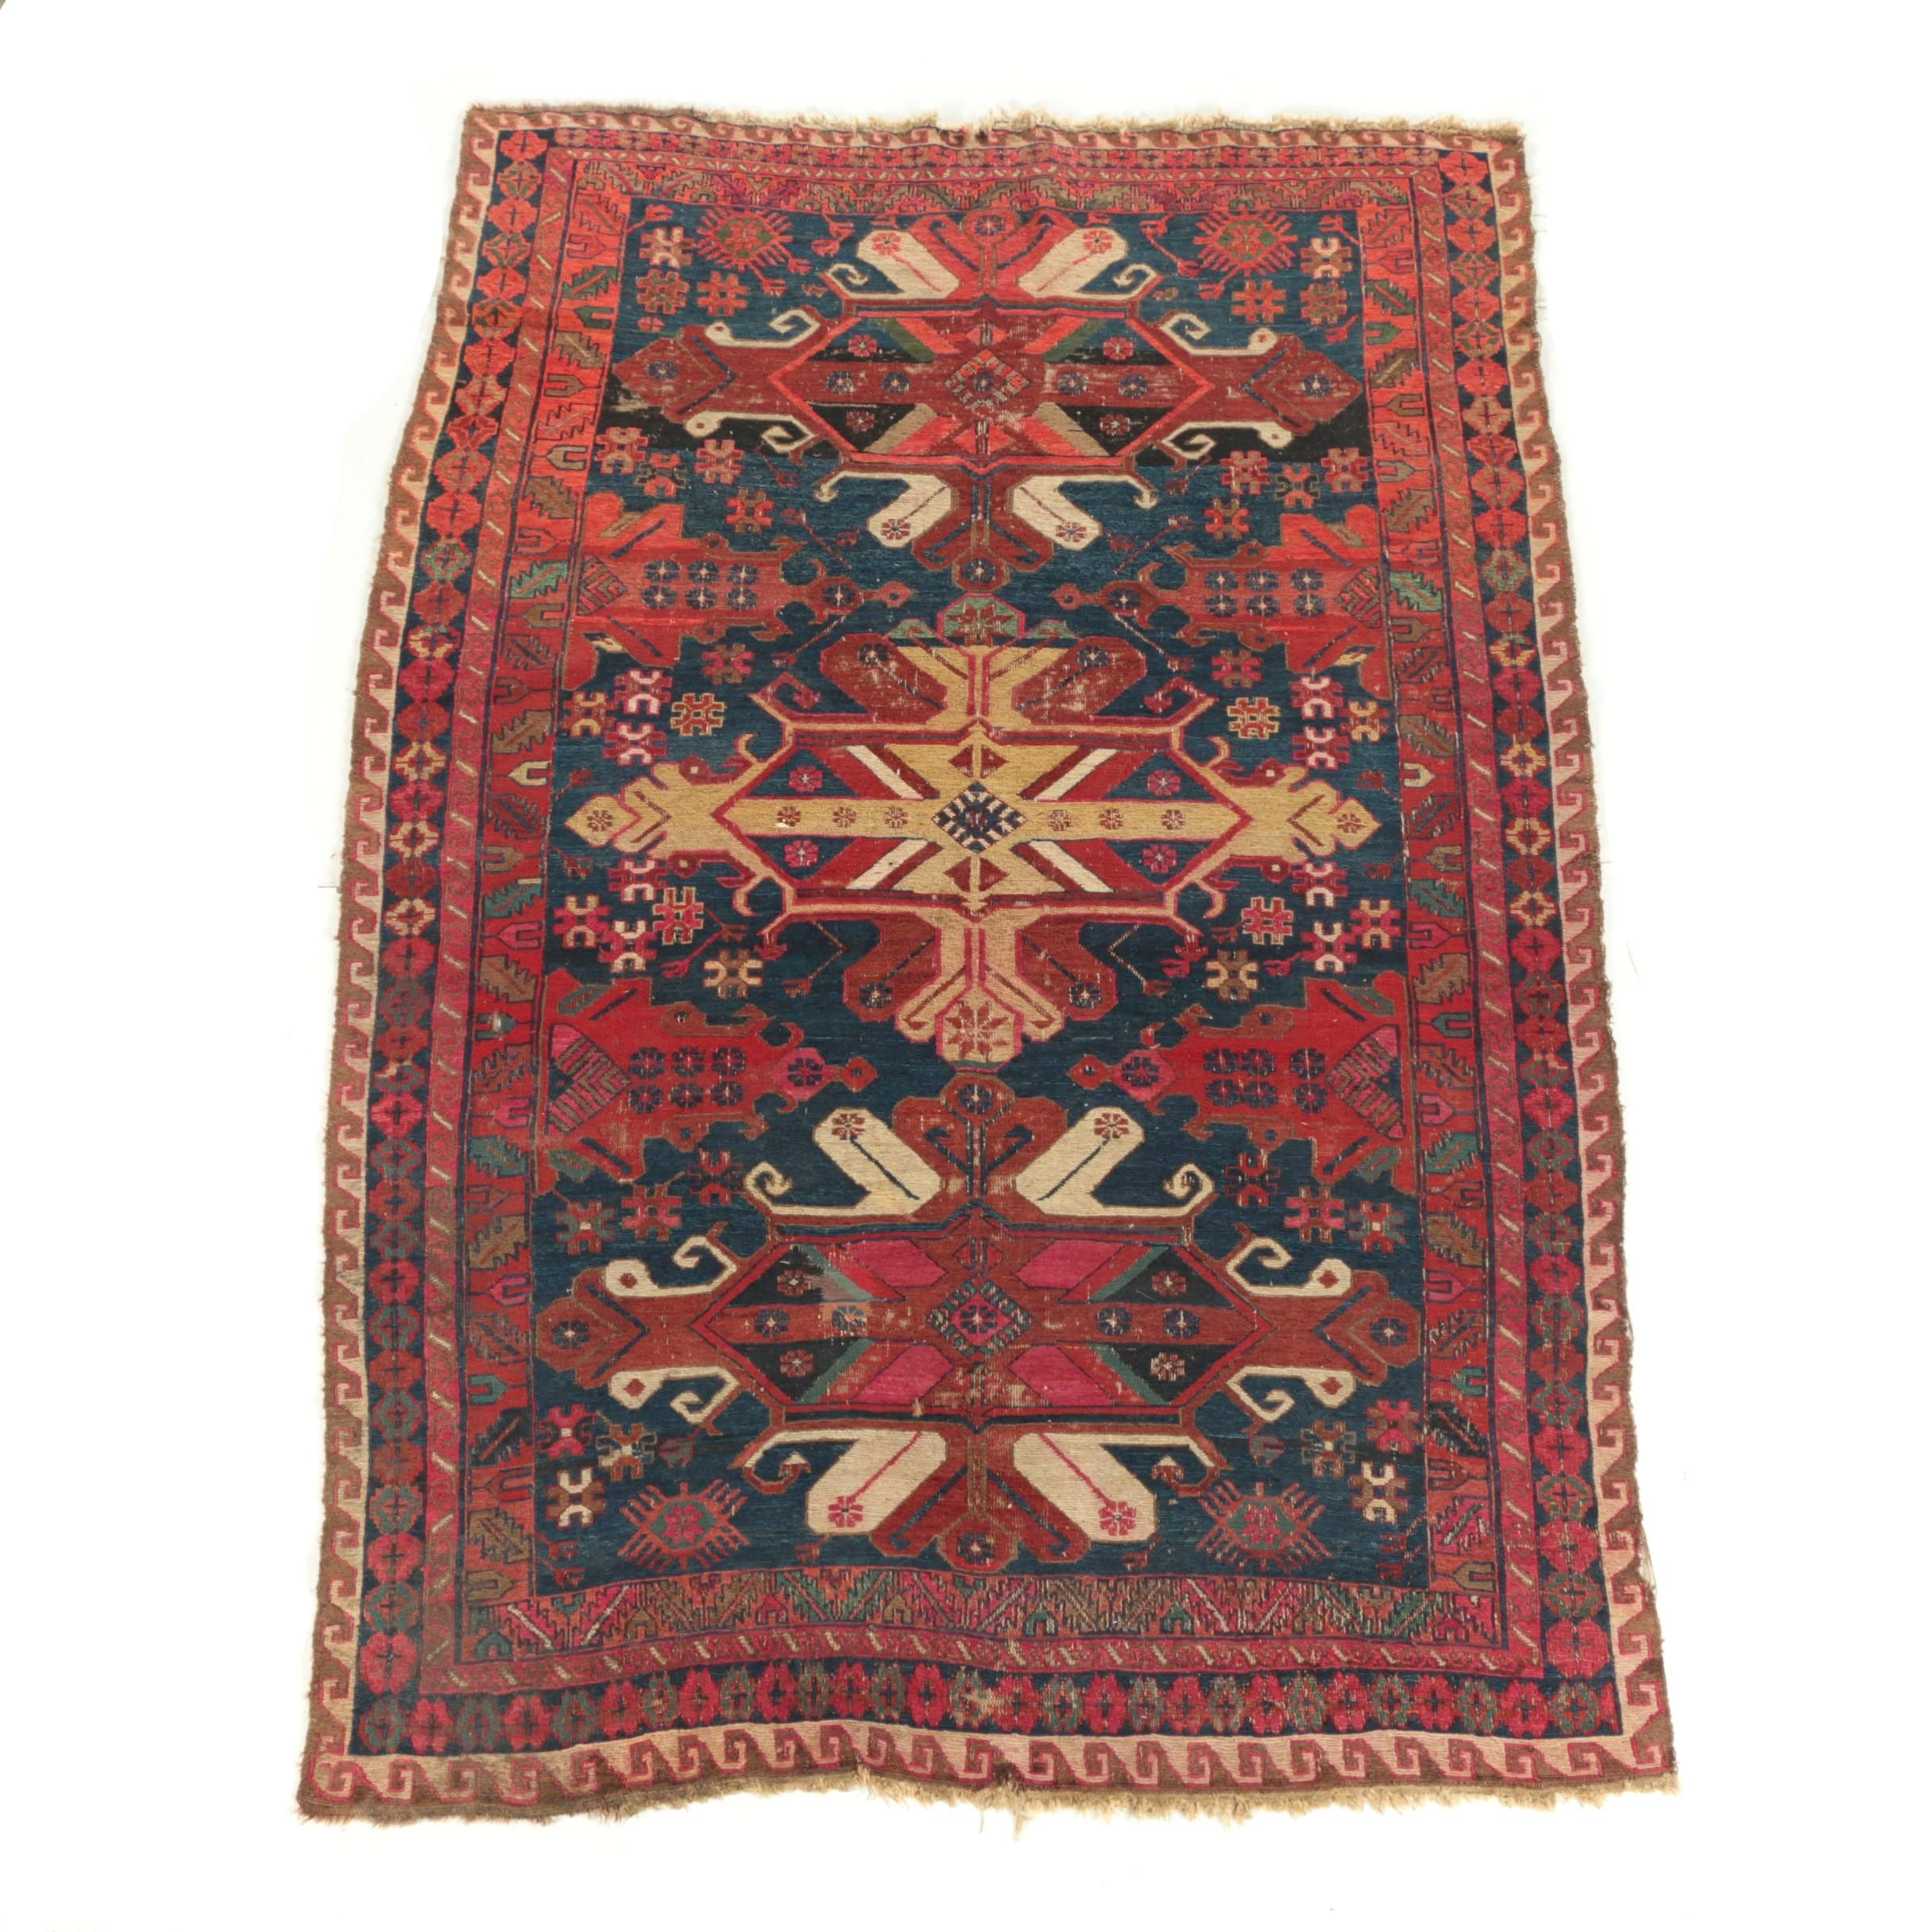 Semi-Antique Handwoven Caucasian Kurdish Wool Soumak Area Rug